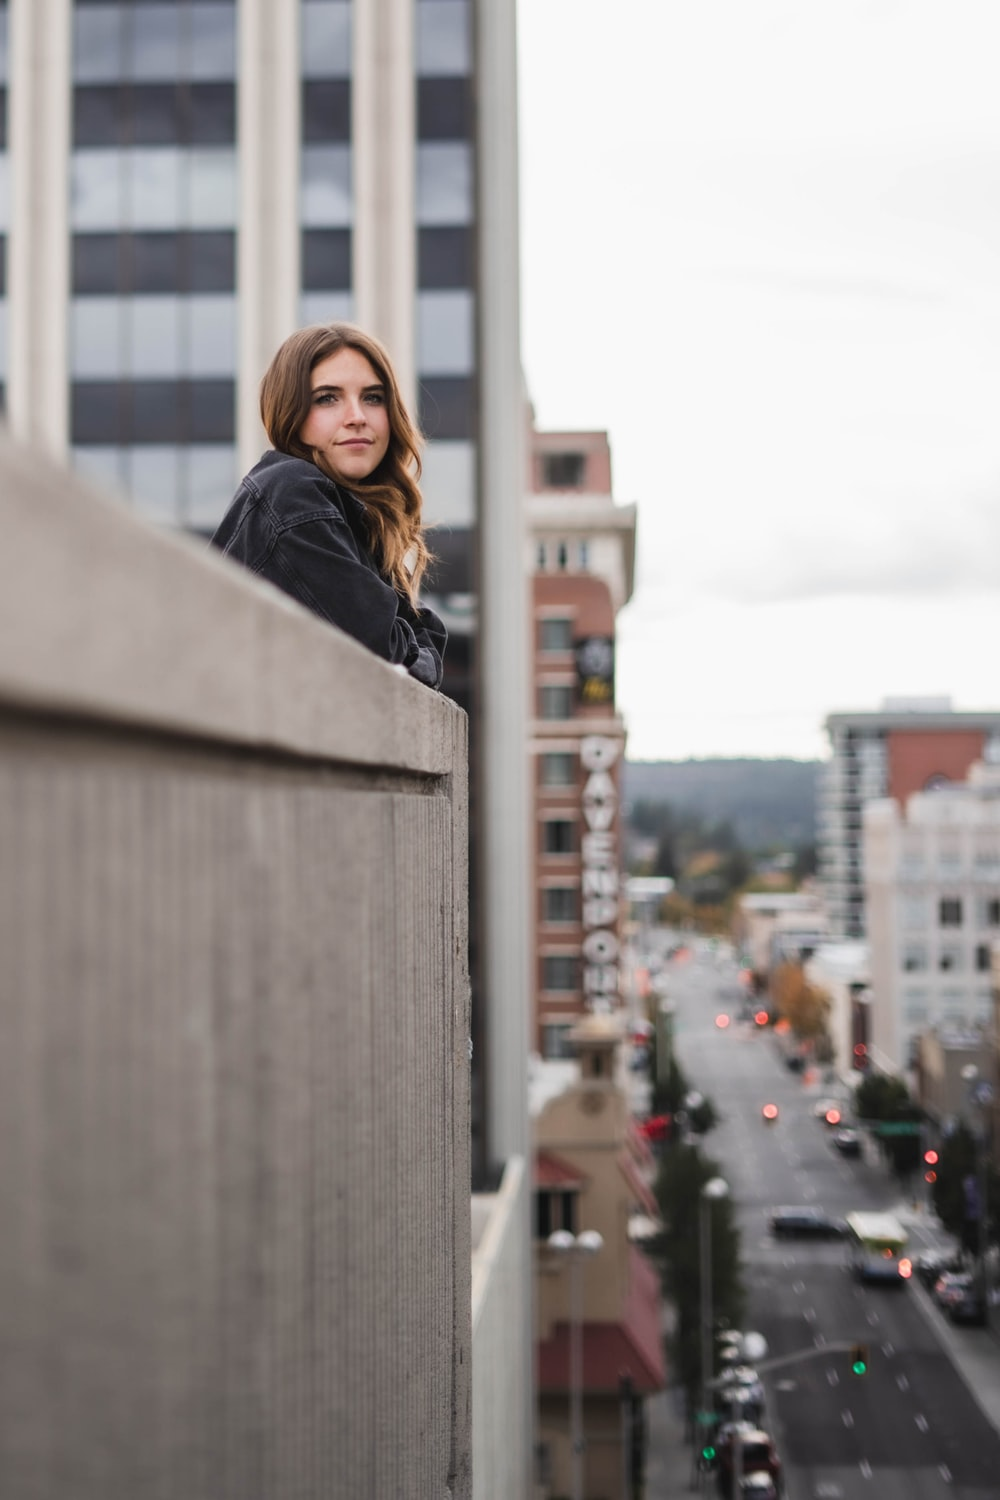 woman in black leather jacket standing near building during daytime